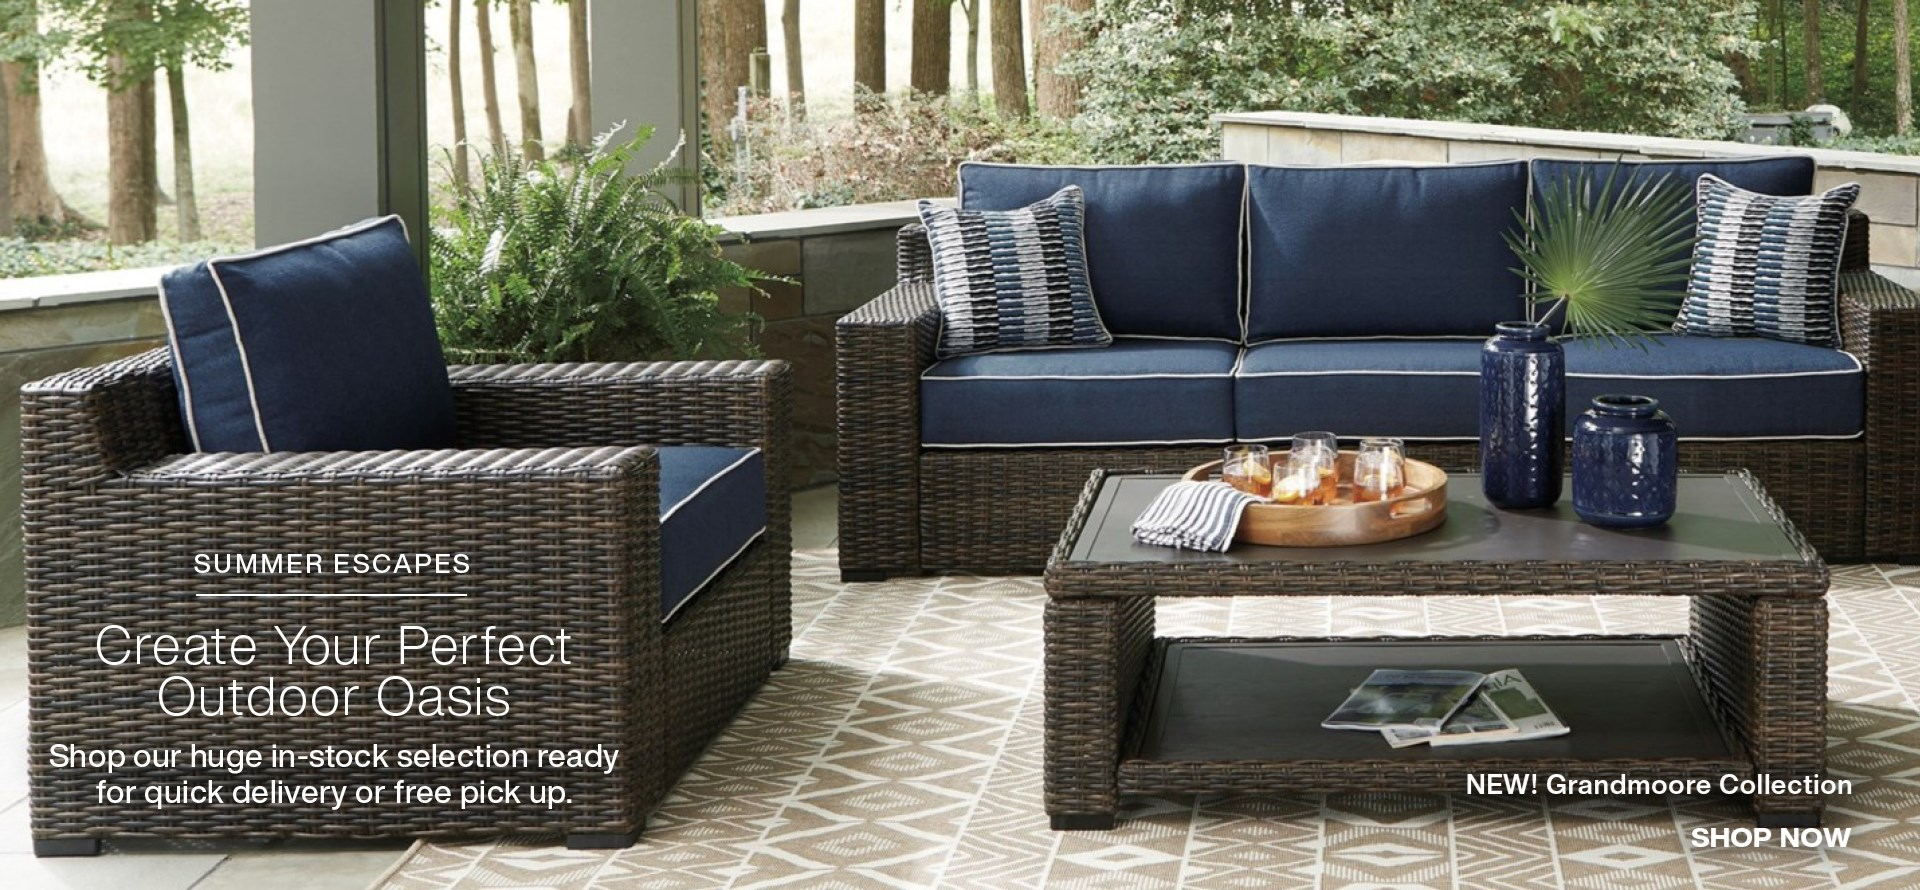 Shop our new Grandmoore Outdoor sofa